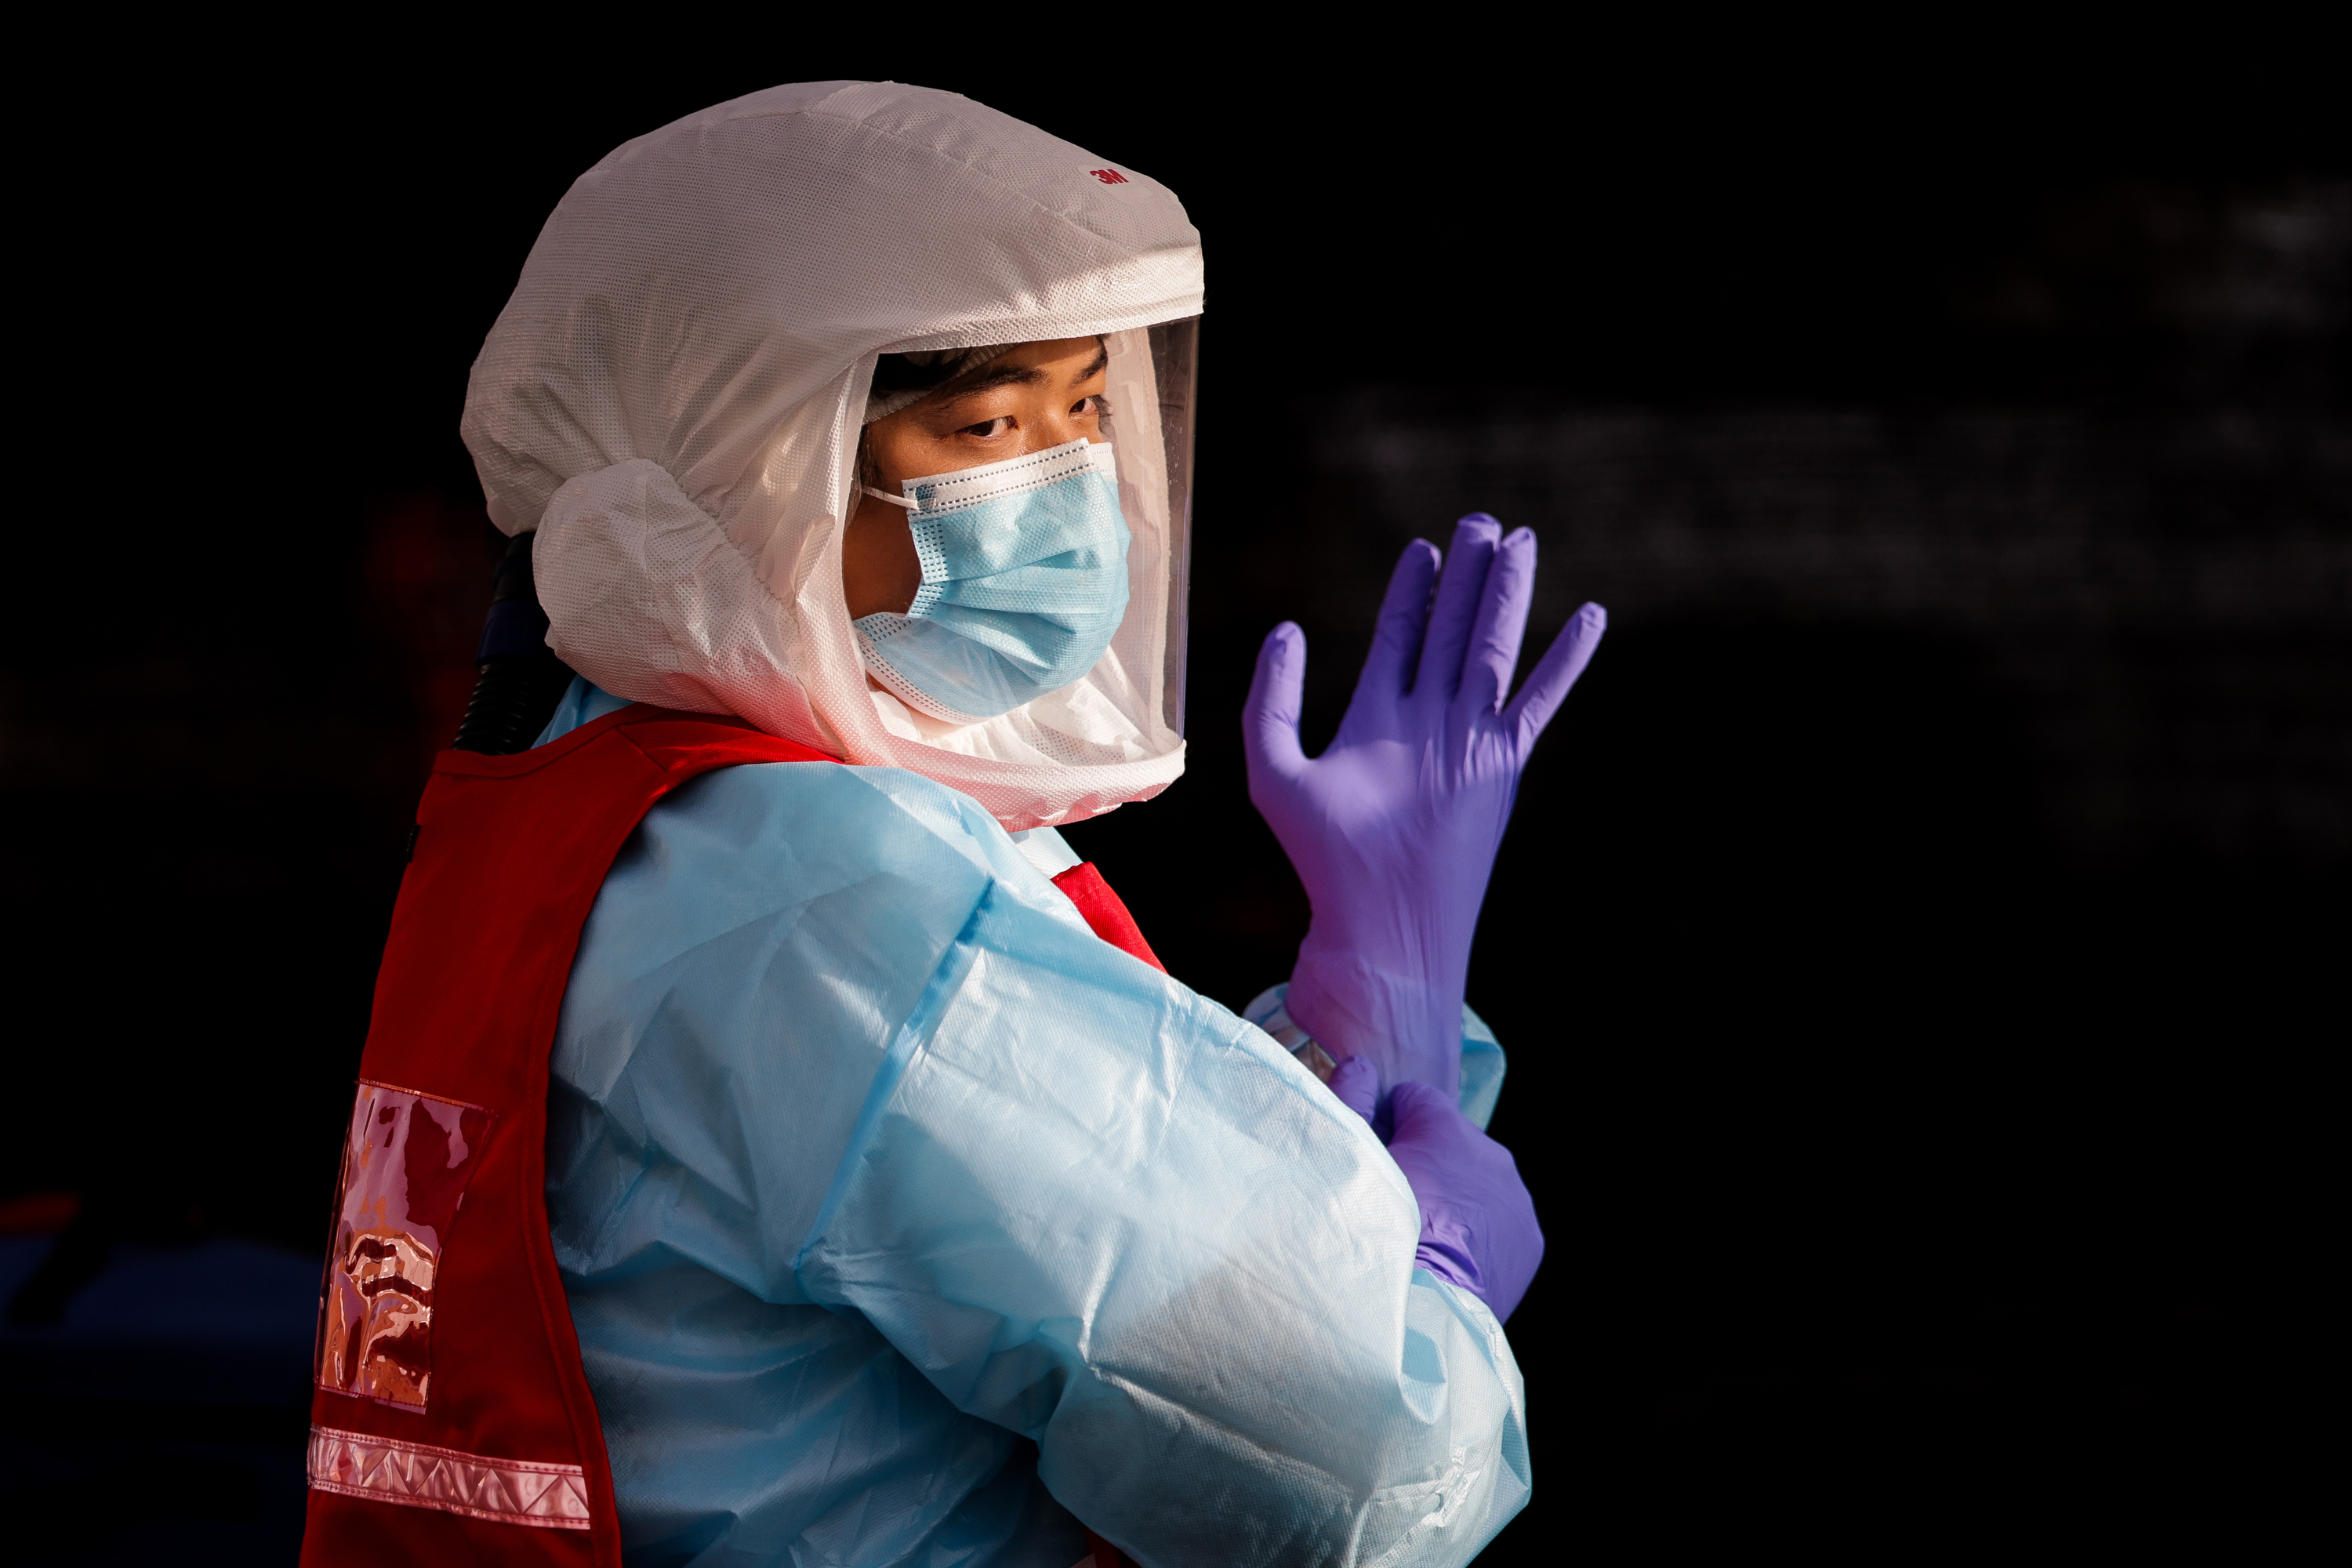 Yihao Qin dons new gloves while working at a COVID-19 test site run by the Salt Lake County Health Department at Glendale Middle School in Salt Lake City on Tuesday, Sept. 15, 2020.